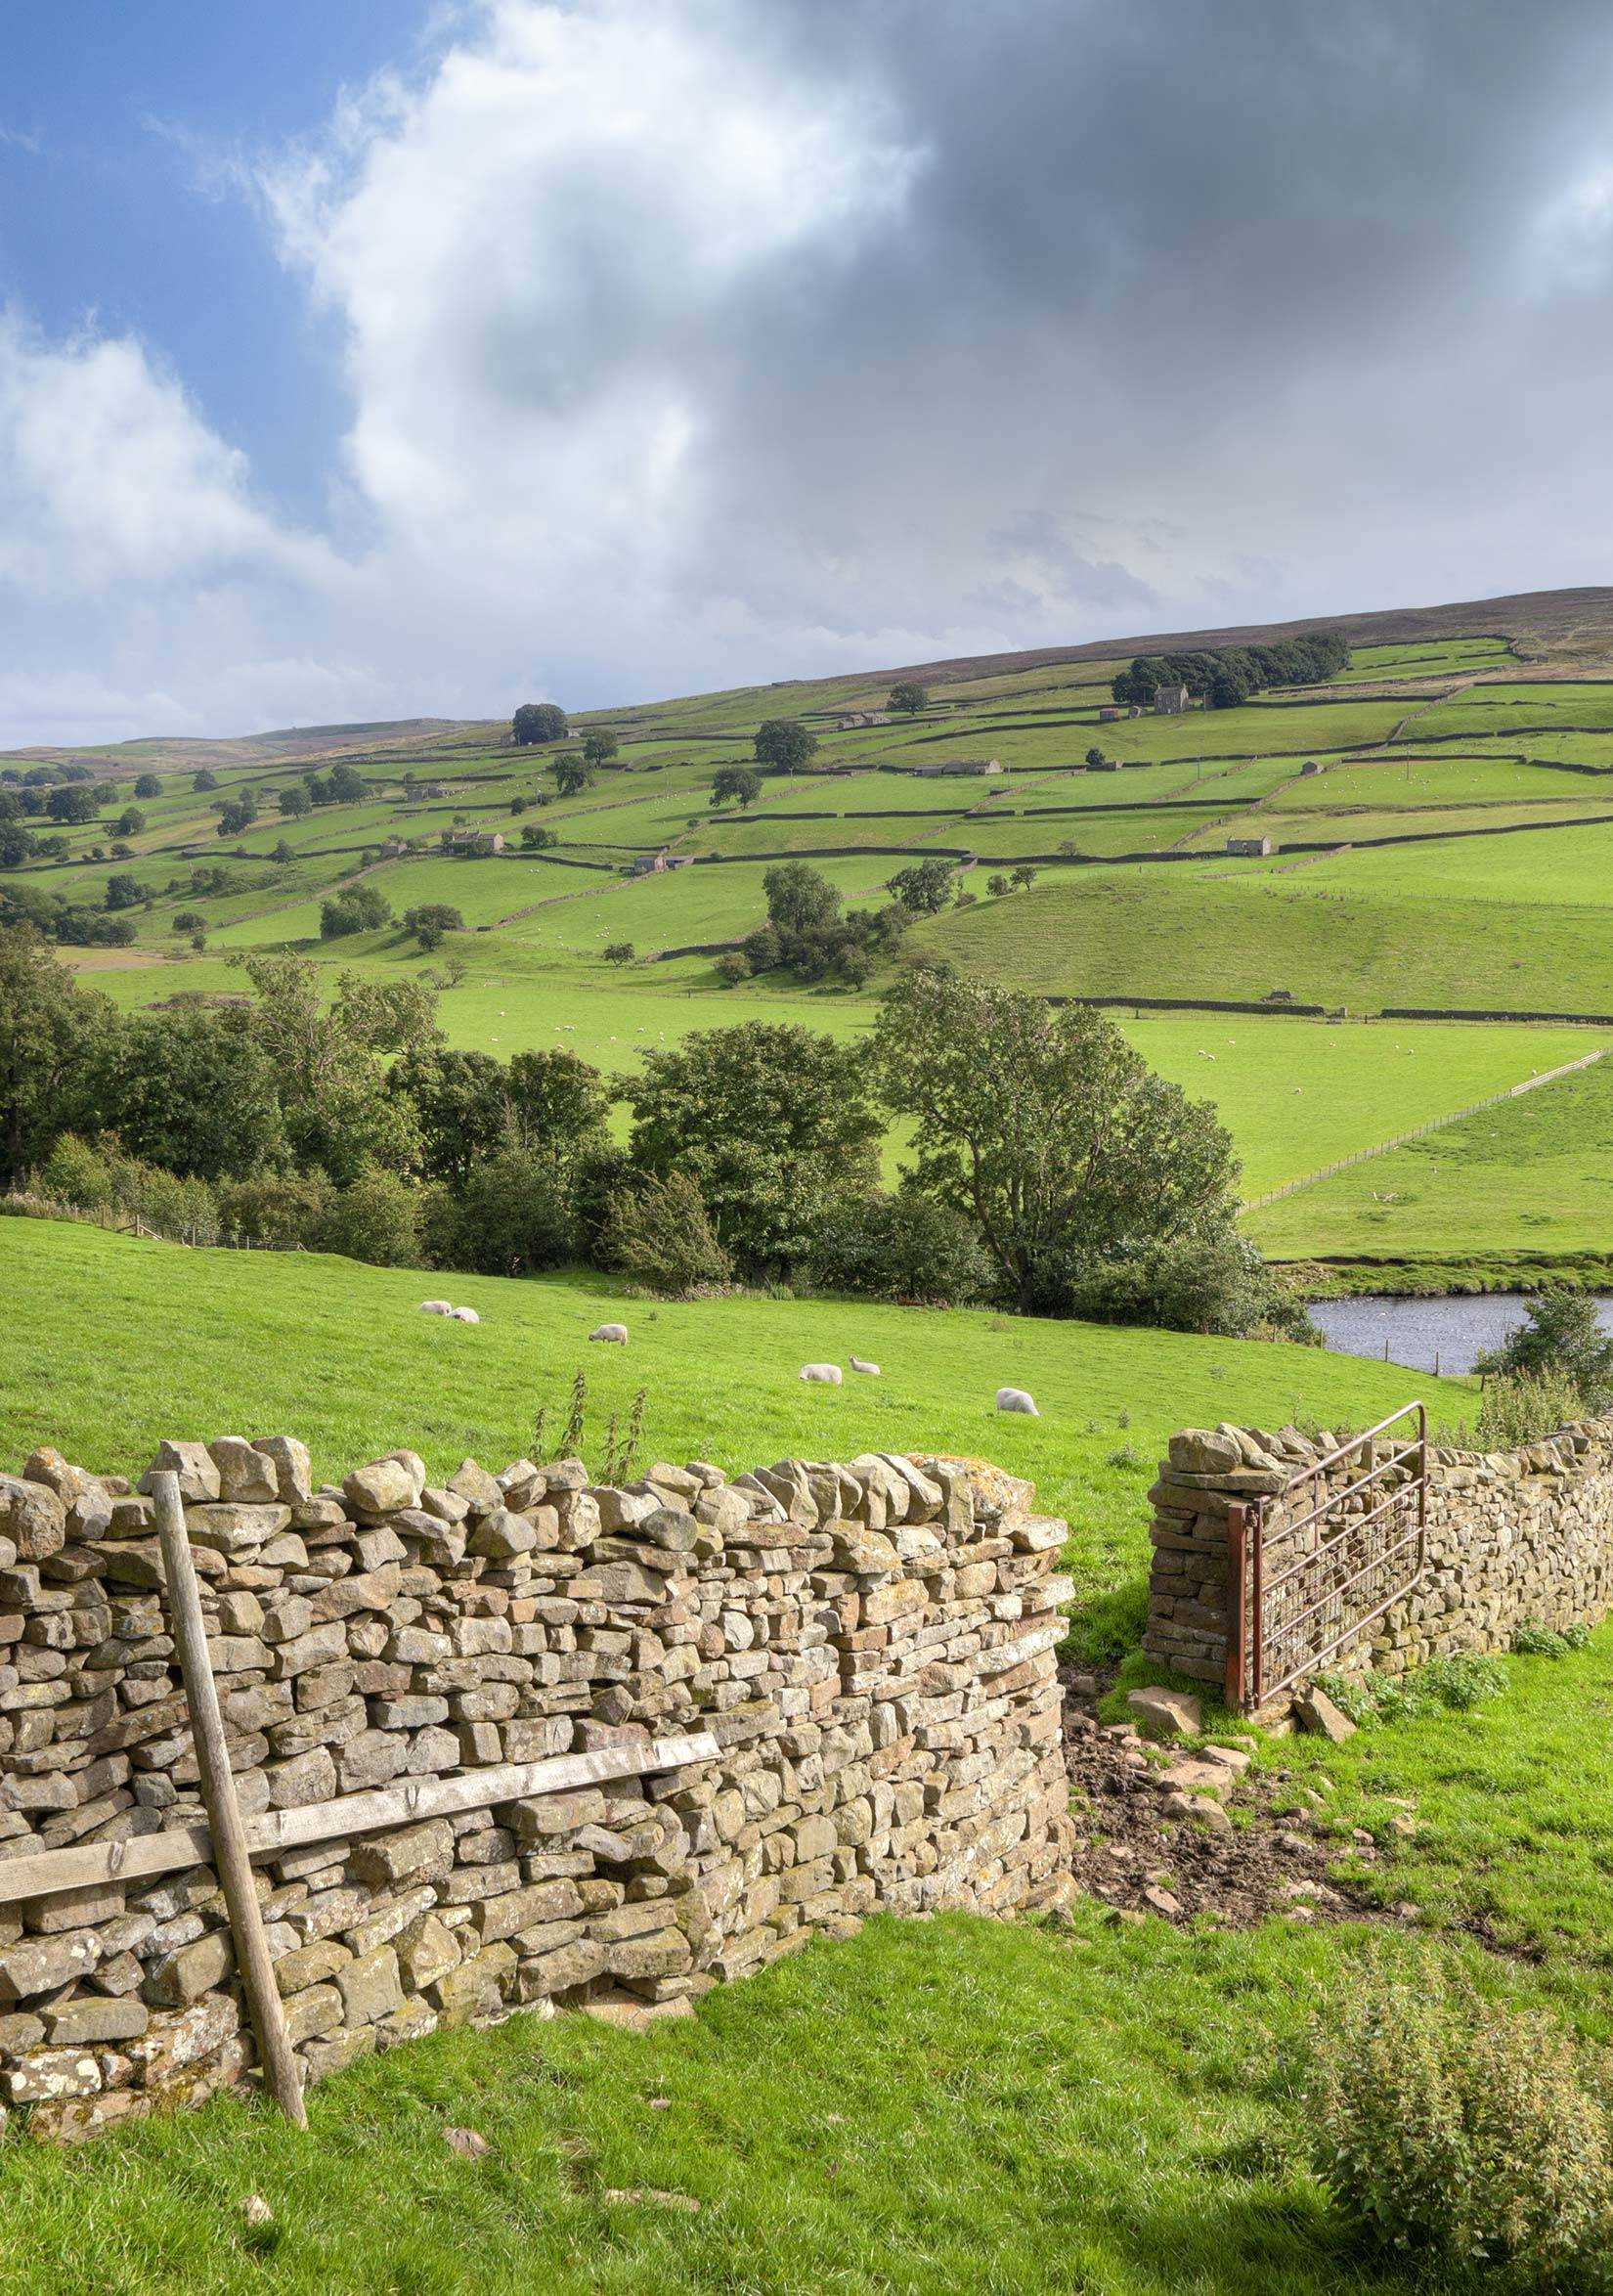 Yorkshire Dales drystone walling and open fields with sheep